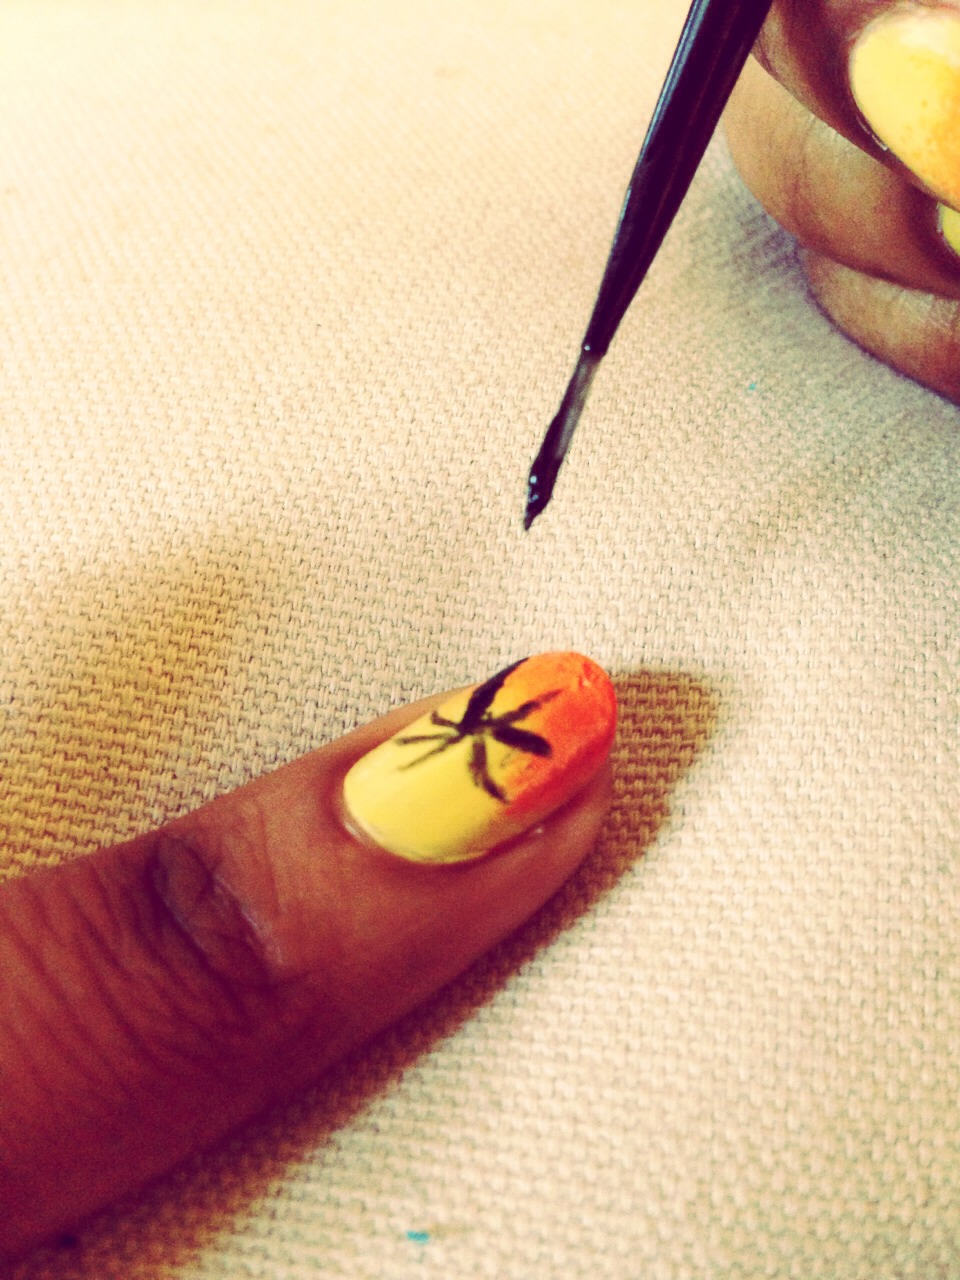 Using nail art brush (or toothpick) draw on a palm tree using black nail polish